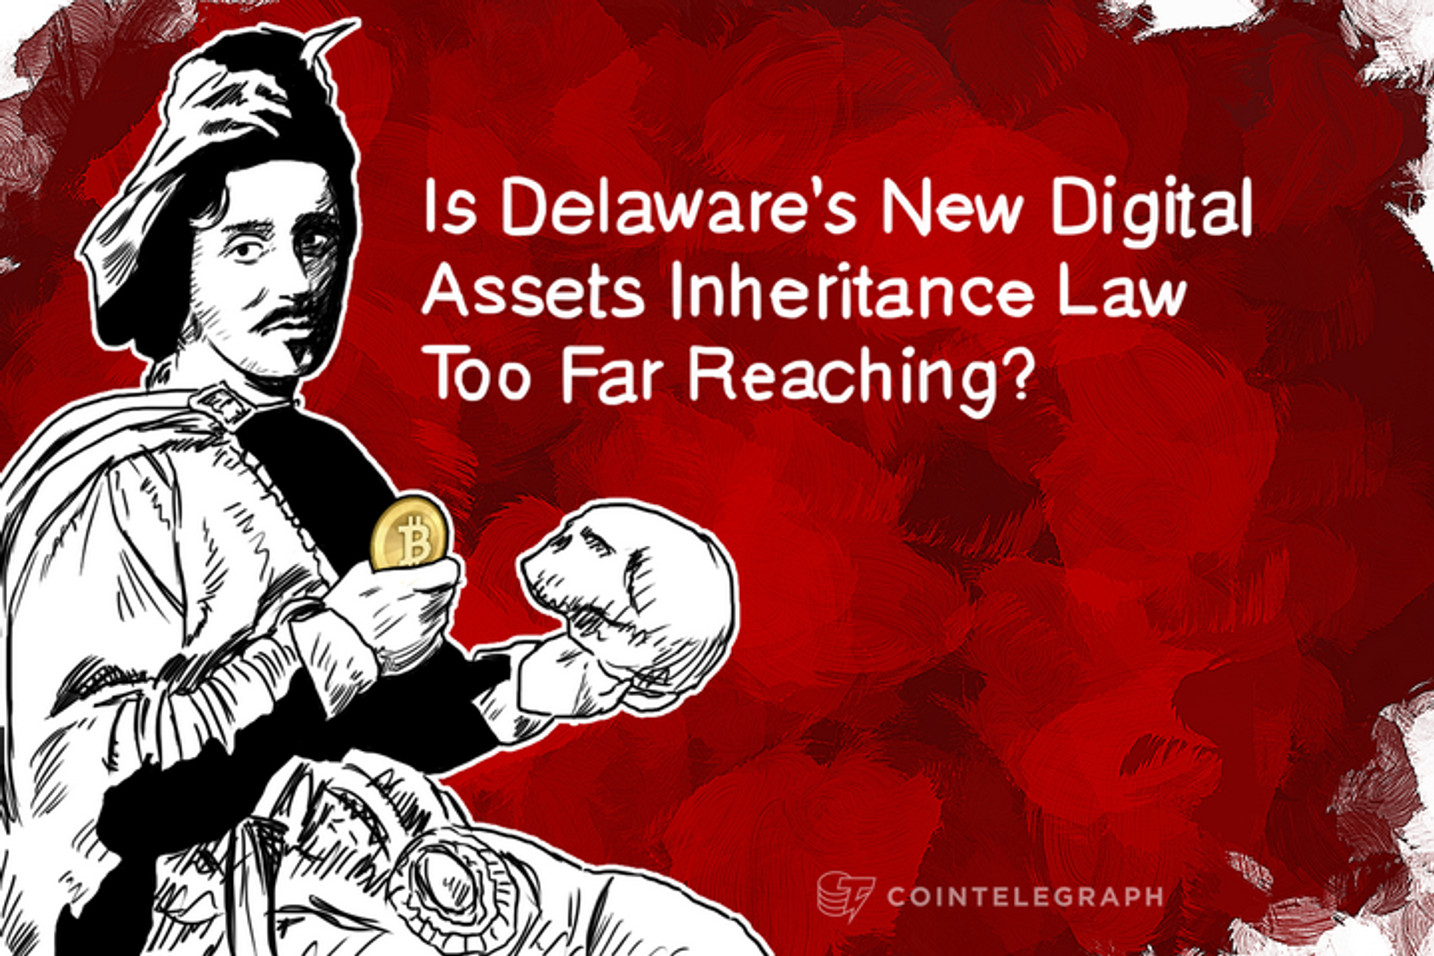 Is Delaware's New Digital Assets Inheritance Law Too Far Reaching?